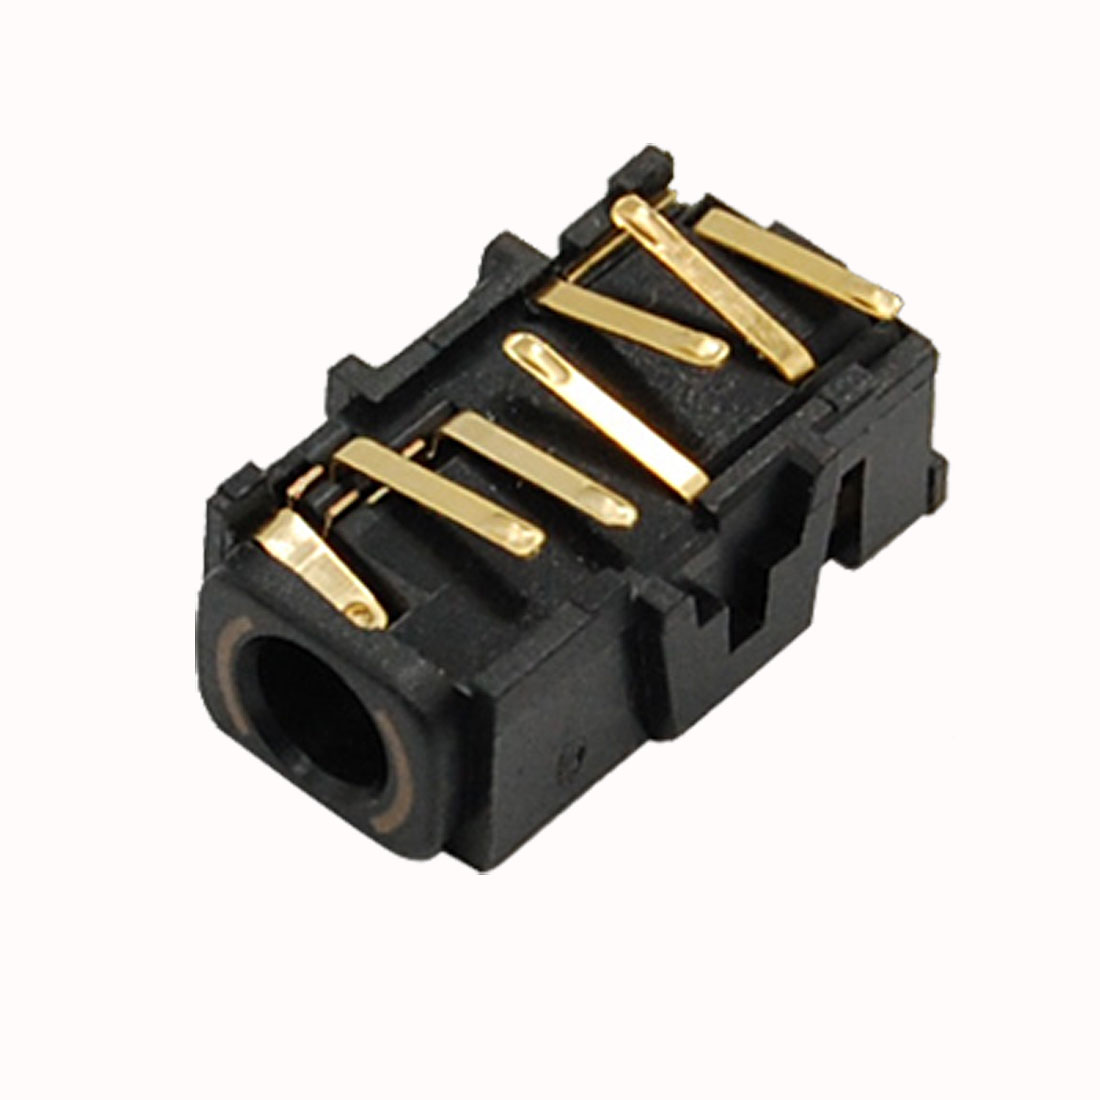 DC 2.0 Connector Power Charge Jack for Nokia 6300/6700/N70/N73/N79/E66/E72/N95/N97